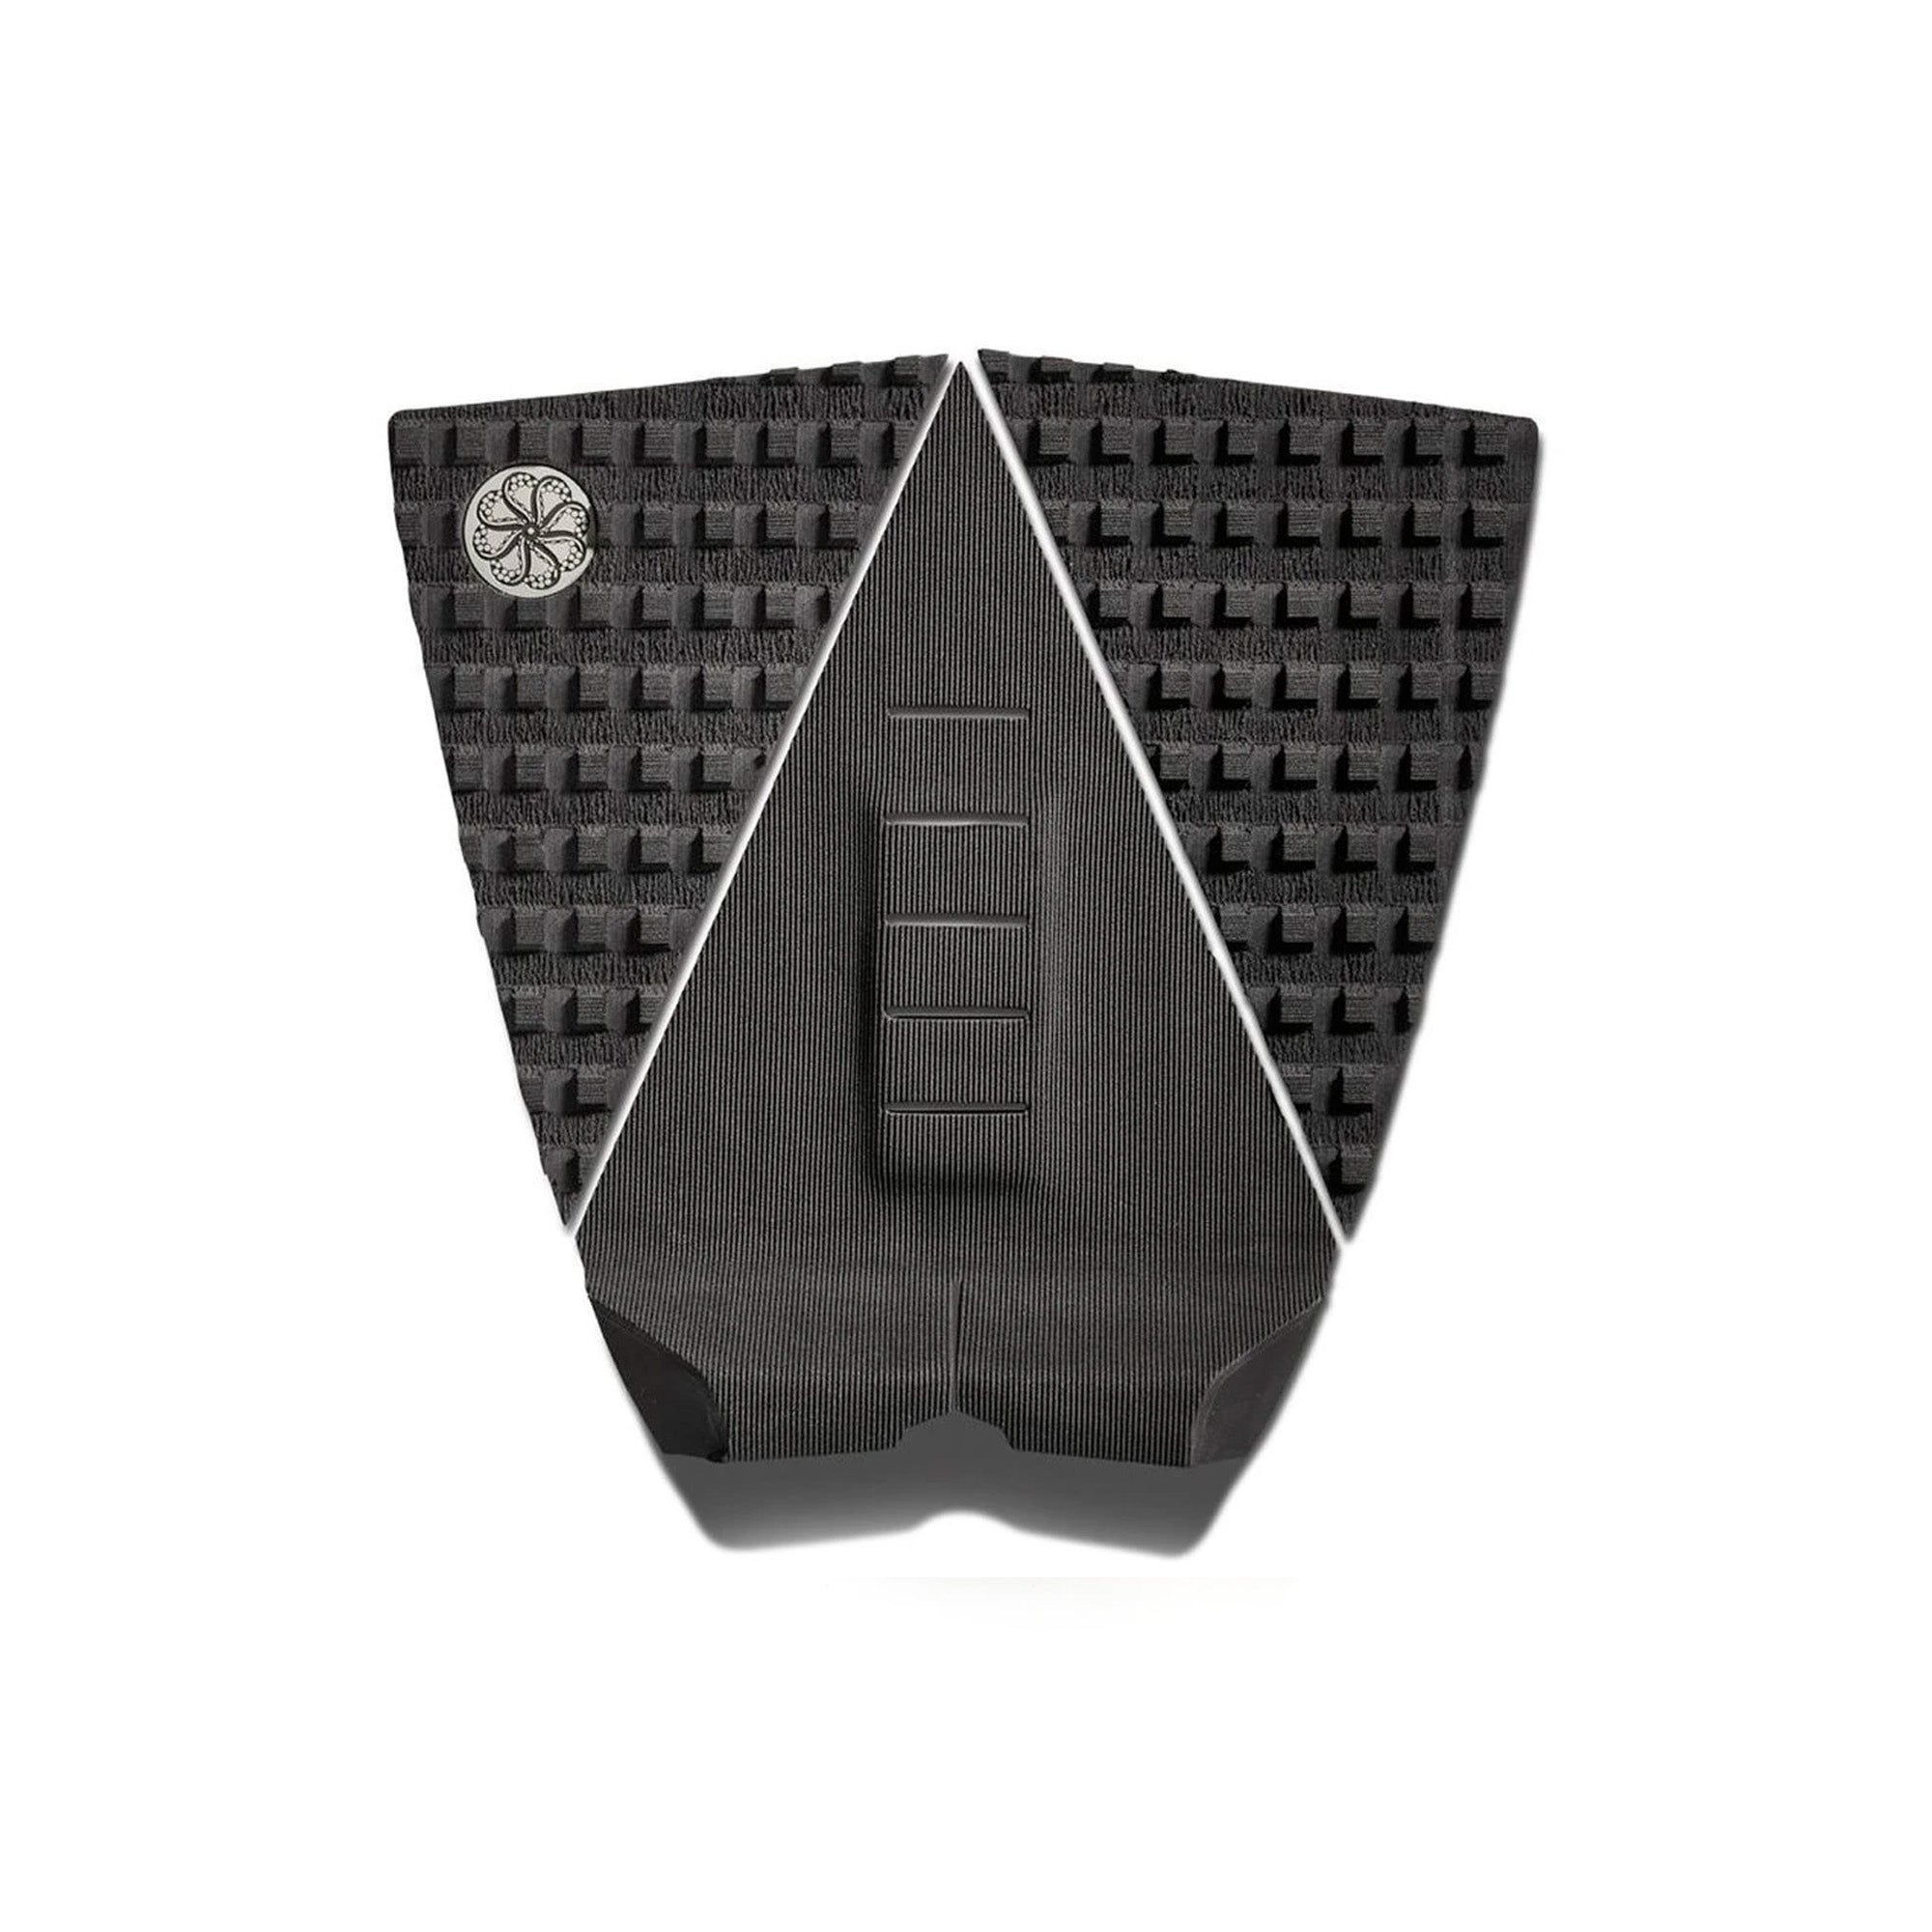 Octopus Dylan Graves Arch Traction Pad - Black